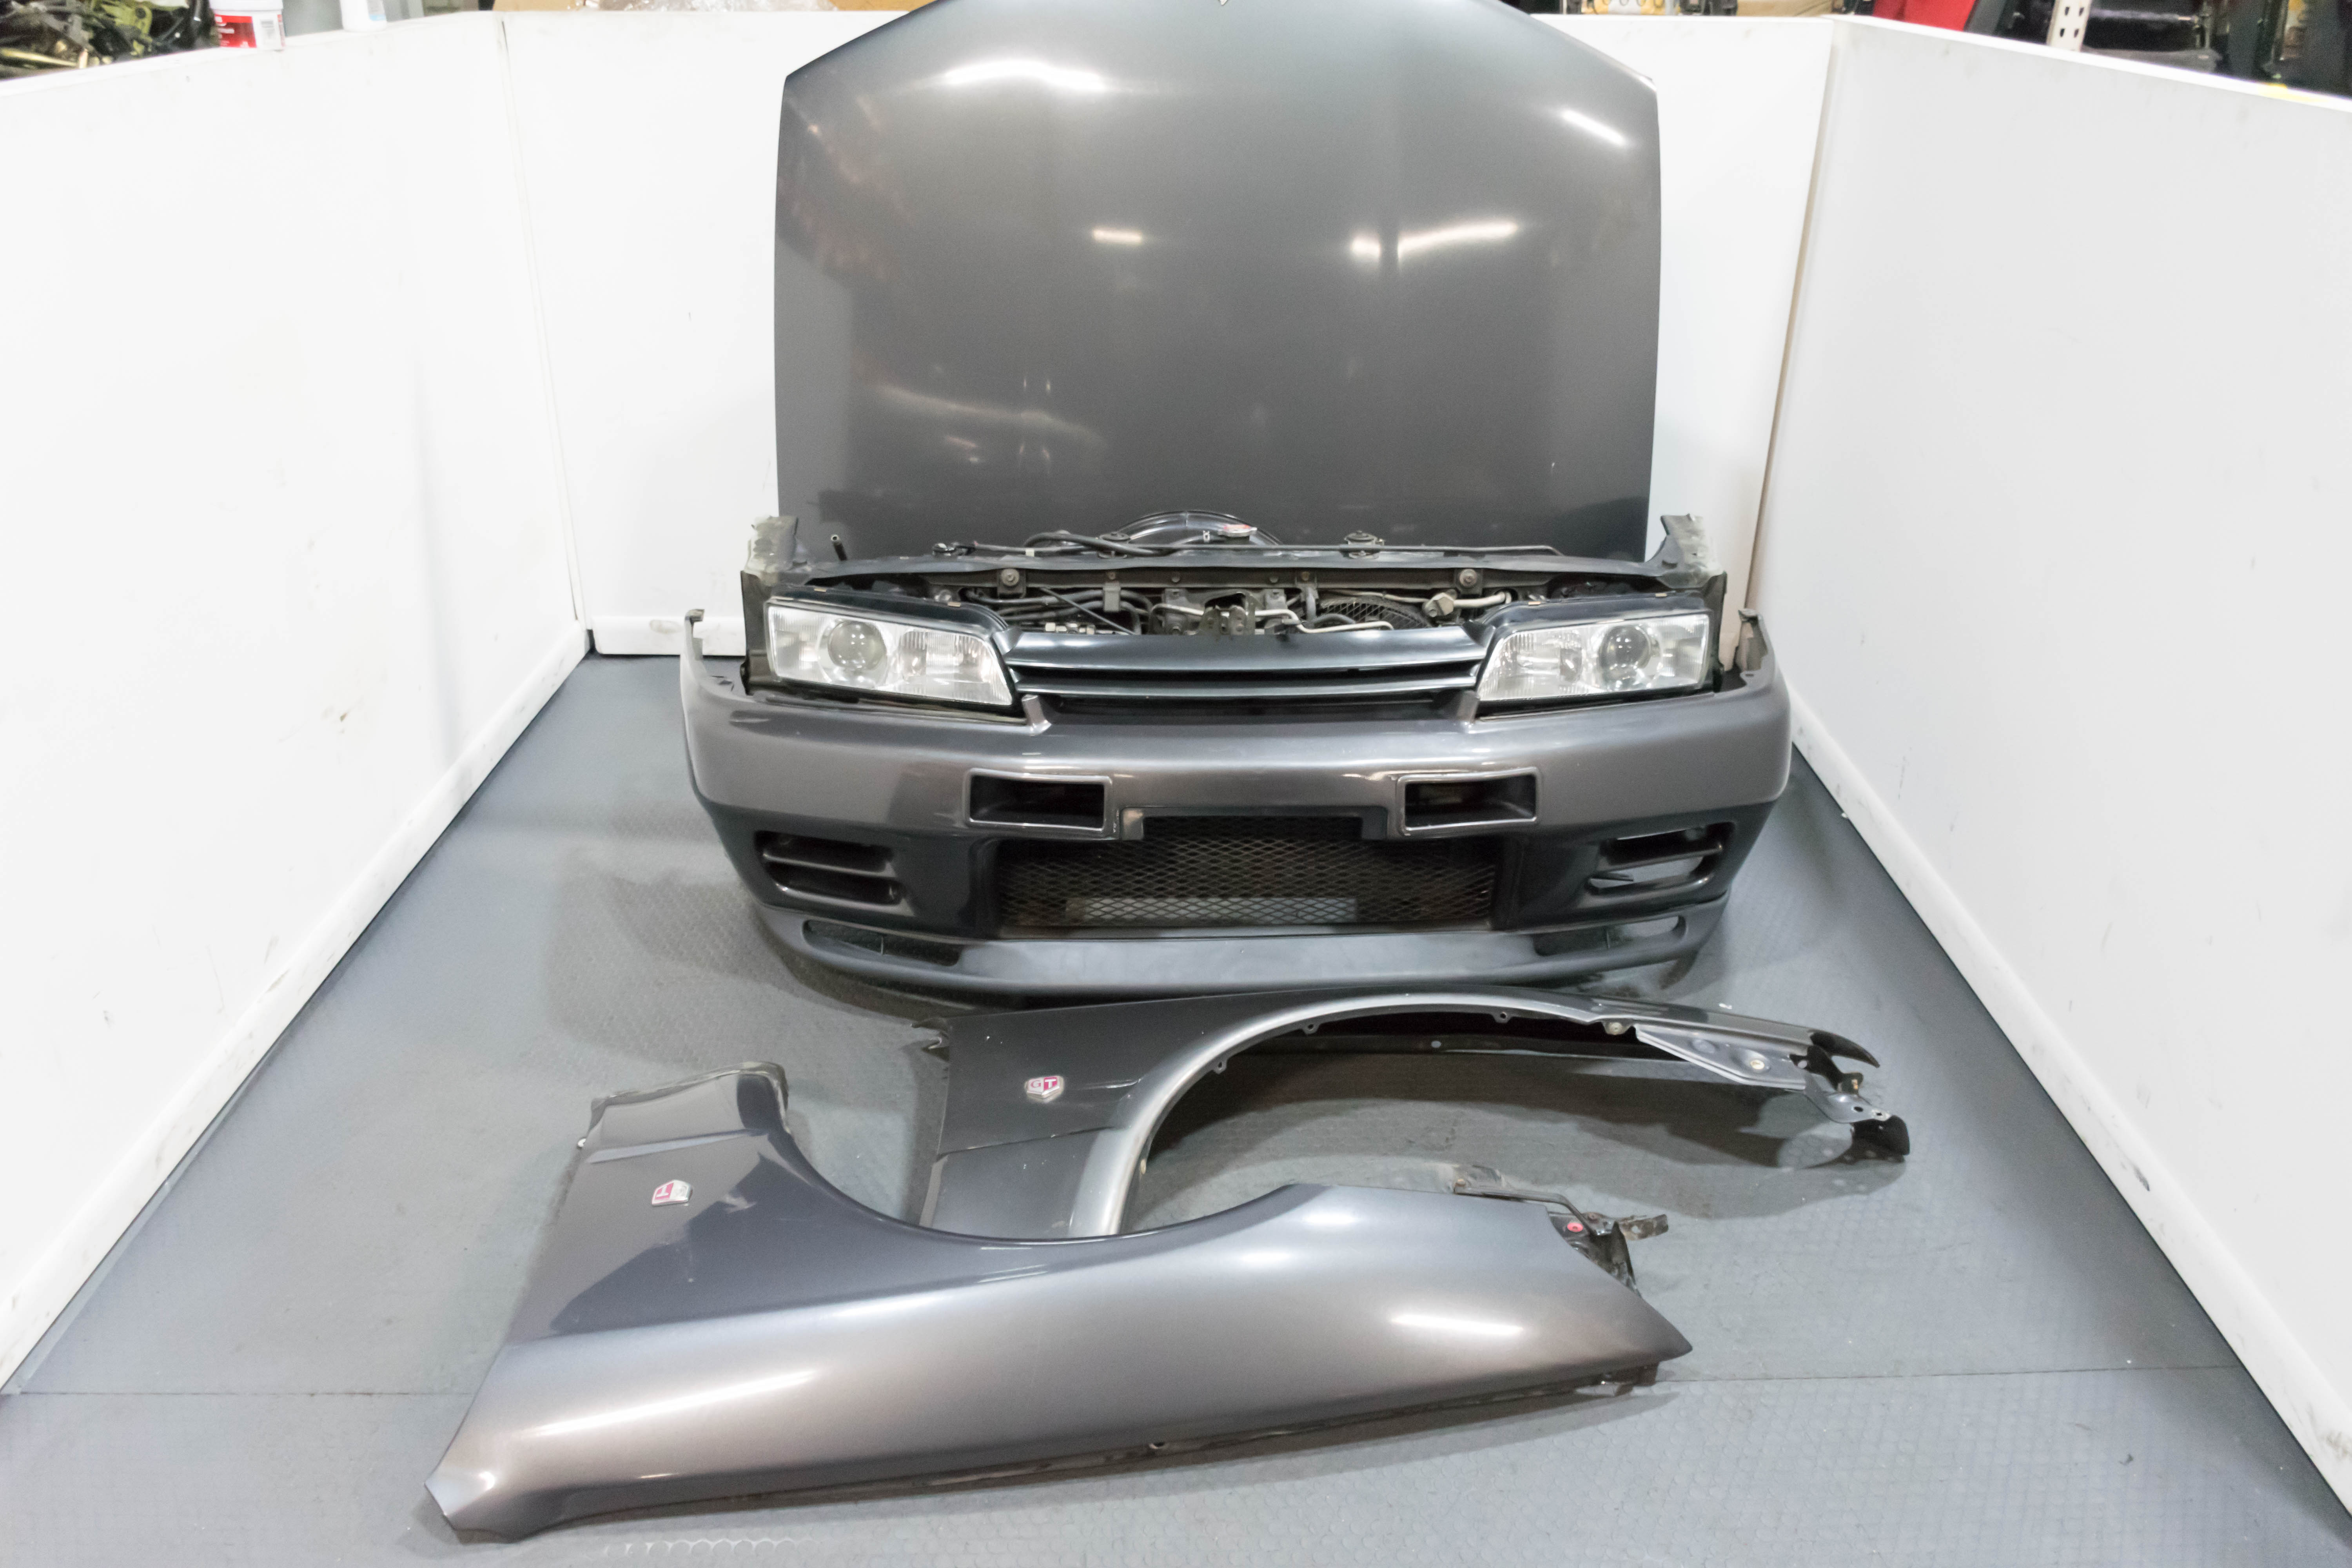 JDM R32 Nissan Skyline GTR Complete Front Clip with Nismo N1 Style Front  Bumper Fenders Hood Headlights